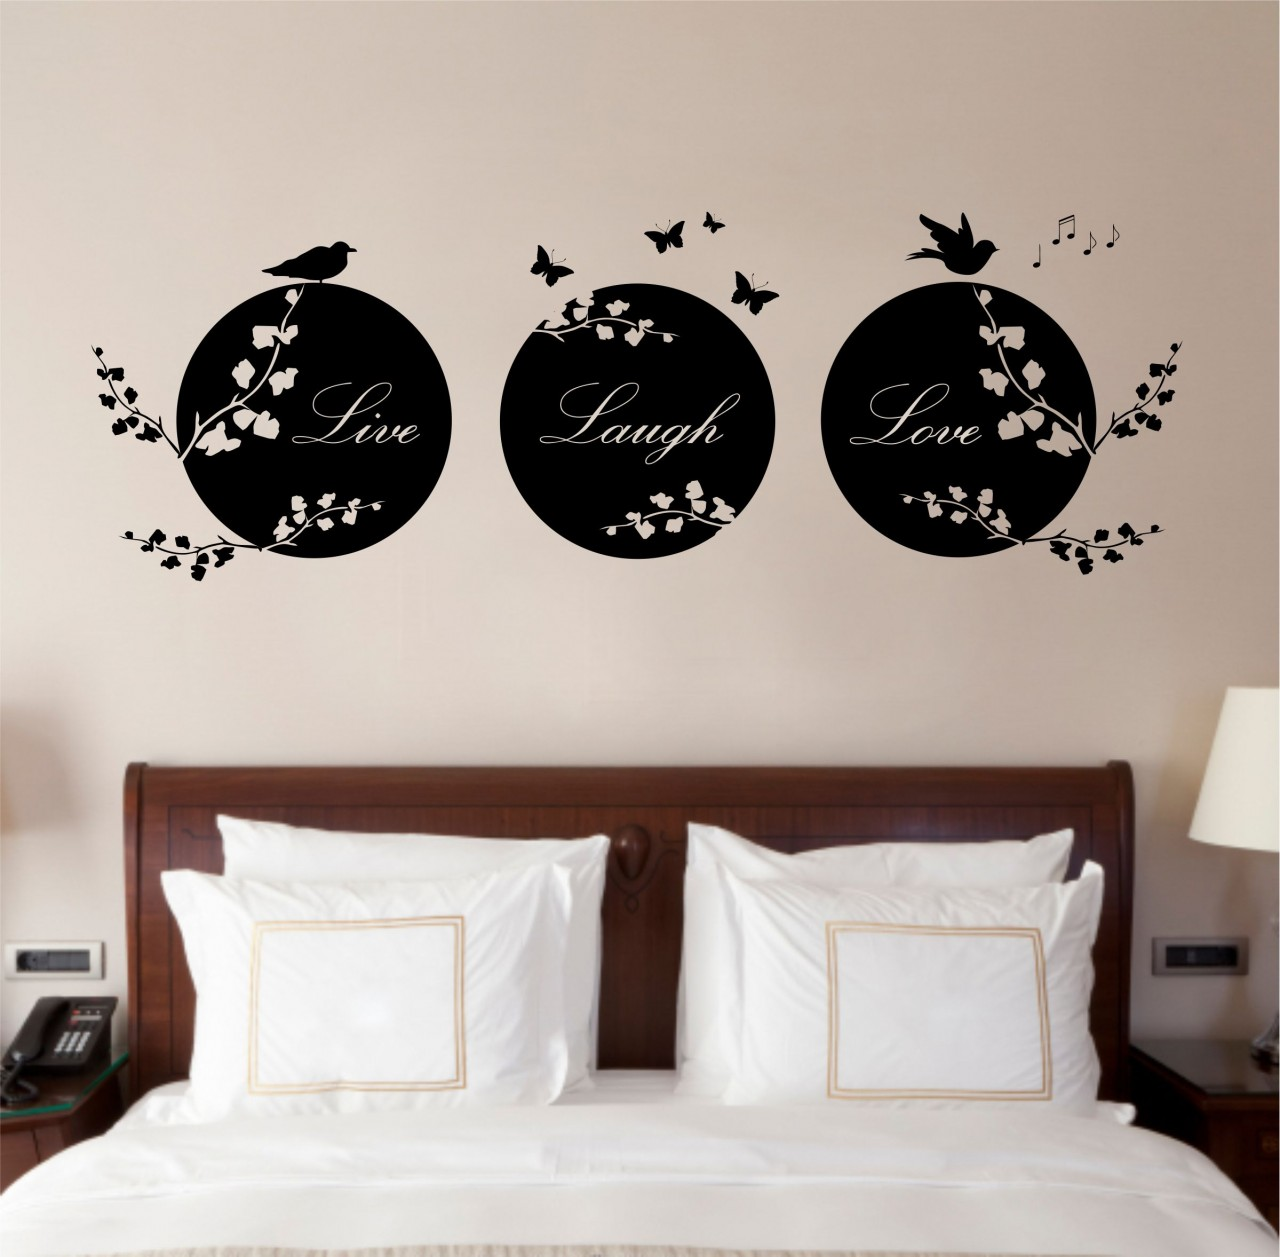 5 types of wall art stickers to beautify the room inoutinterior. Black Bedroom Furniture Sets. Home Design Ideas